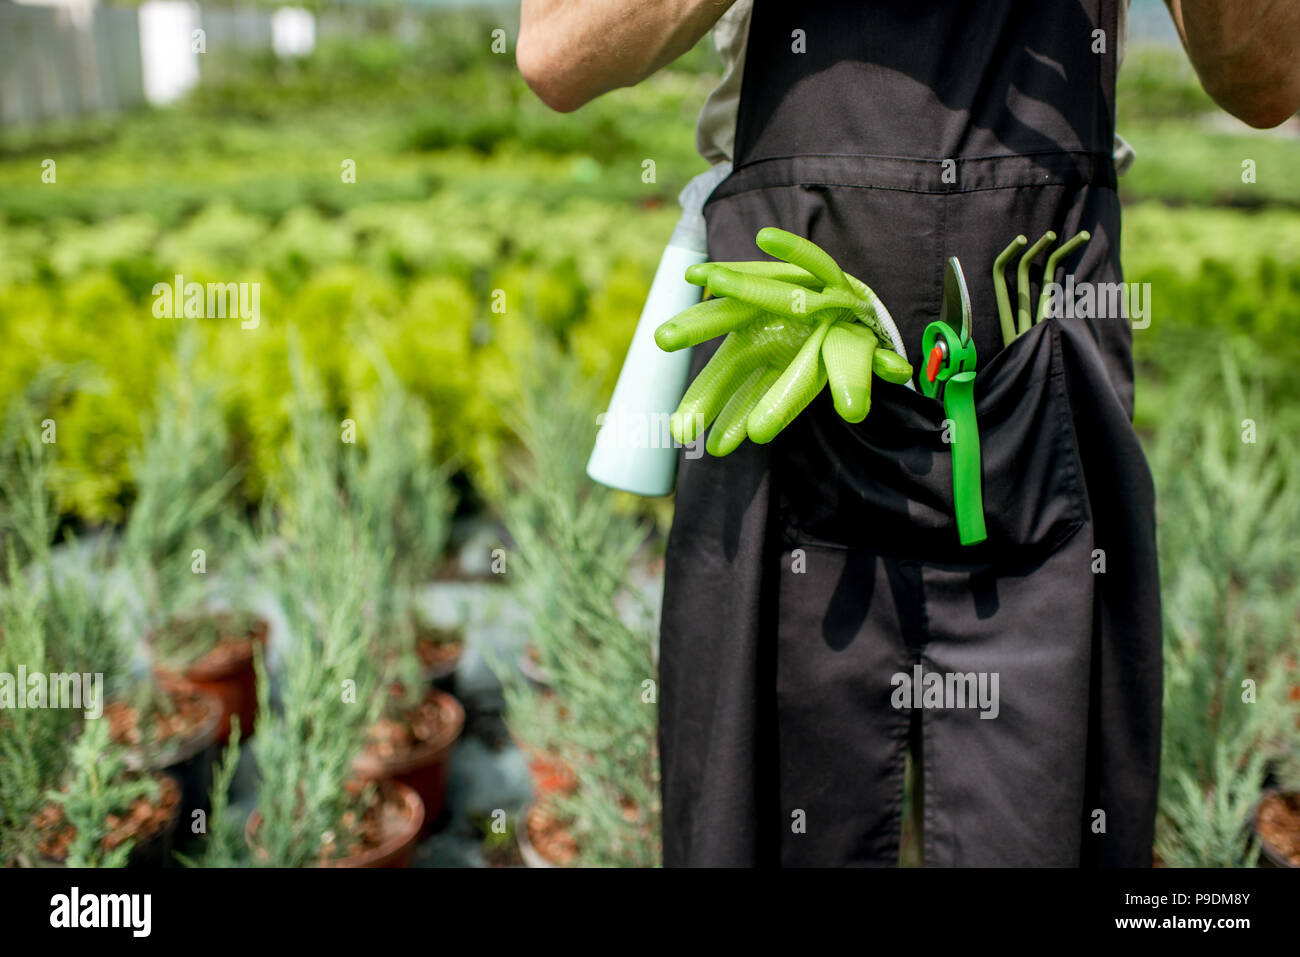 Tools for gardening in the pocket of the gardener - Stock Image